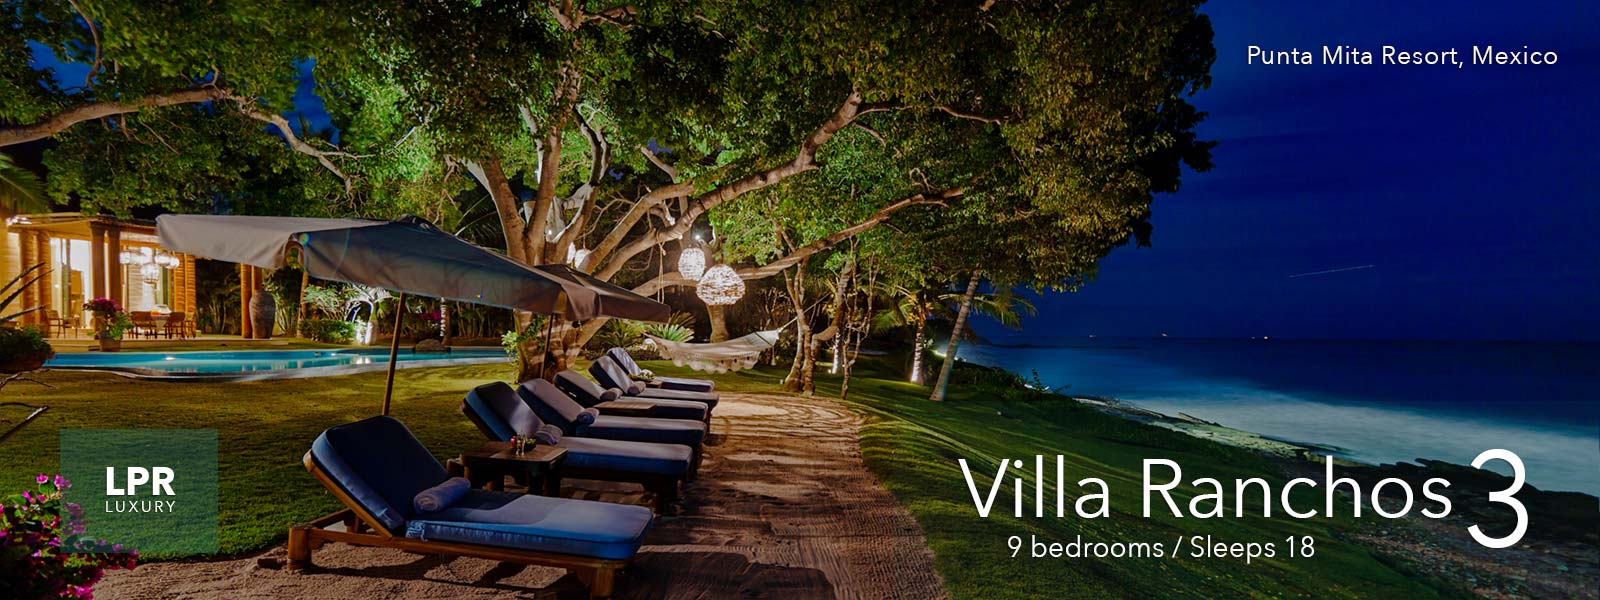 villa ranchos 3 - spectacular luxury villas of ranchos punta mita